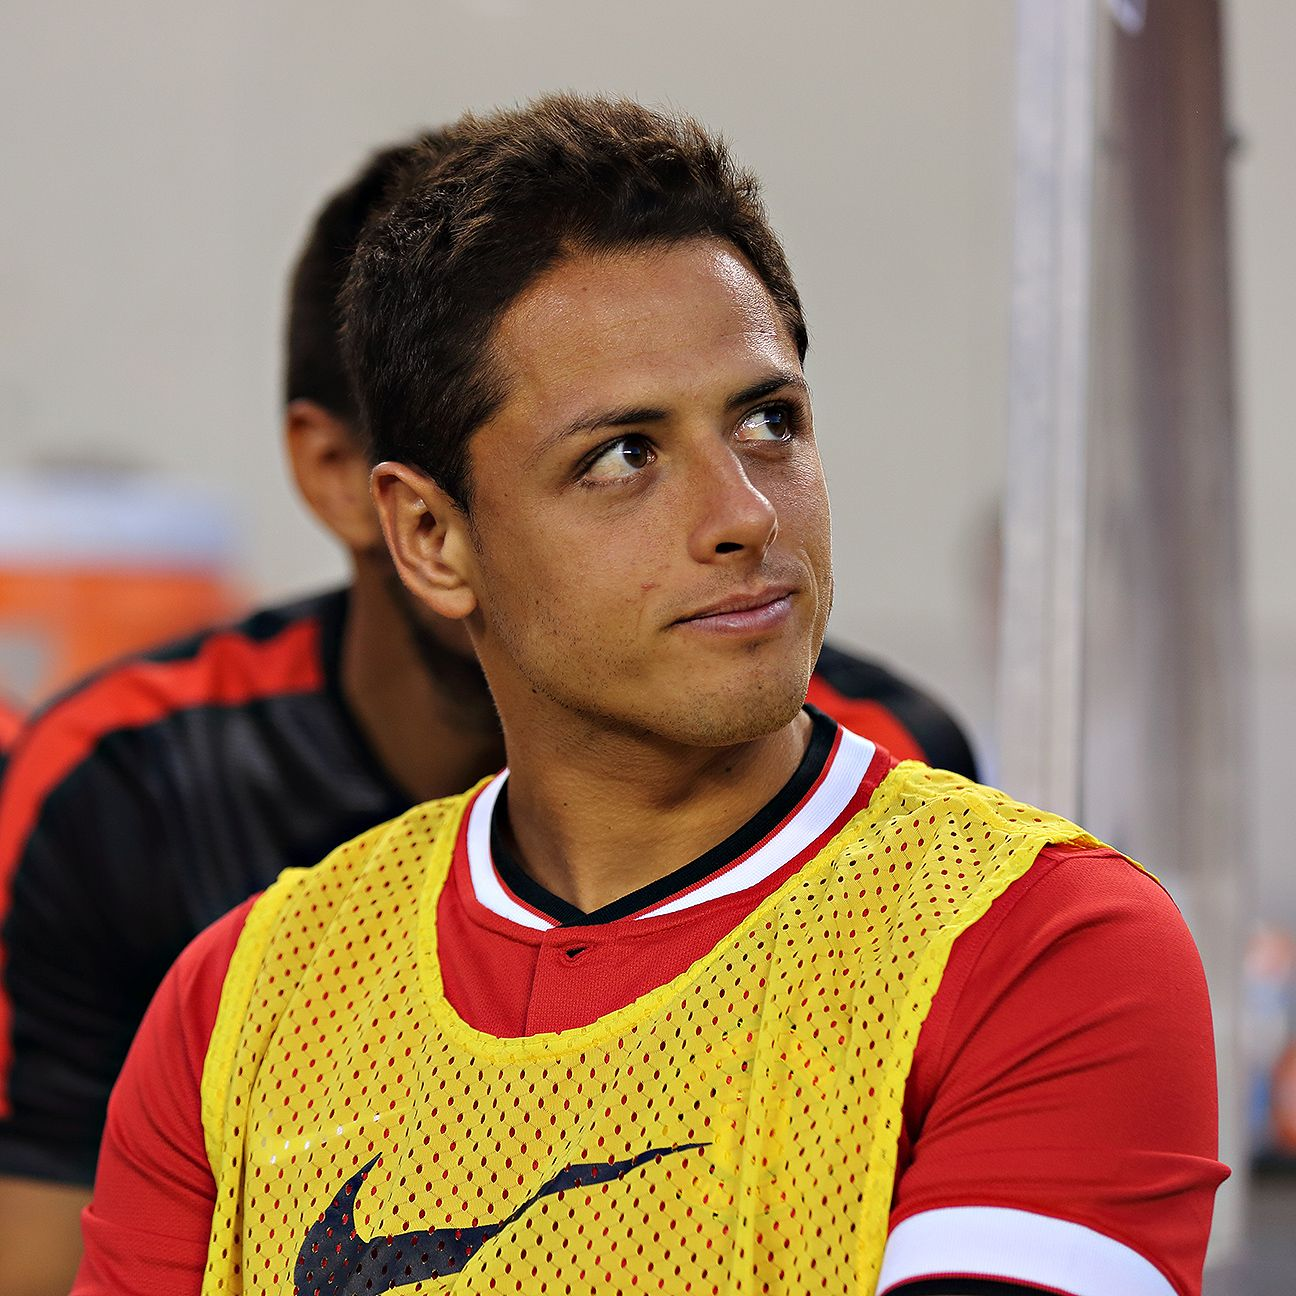 Chicharito Hernandez's 2015-16 season thus far at Manchester United has largely consisted of sitting on the bench.